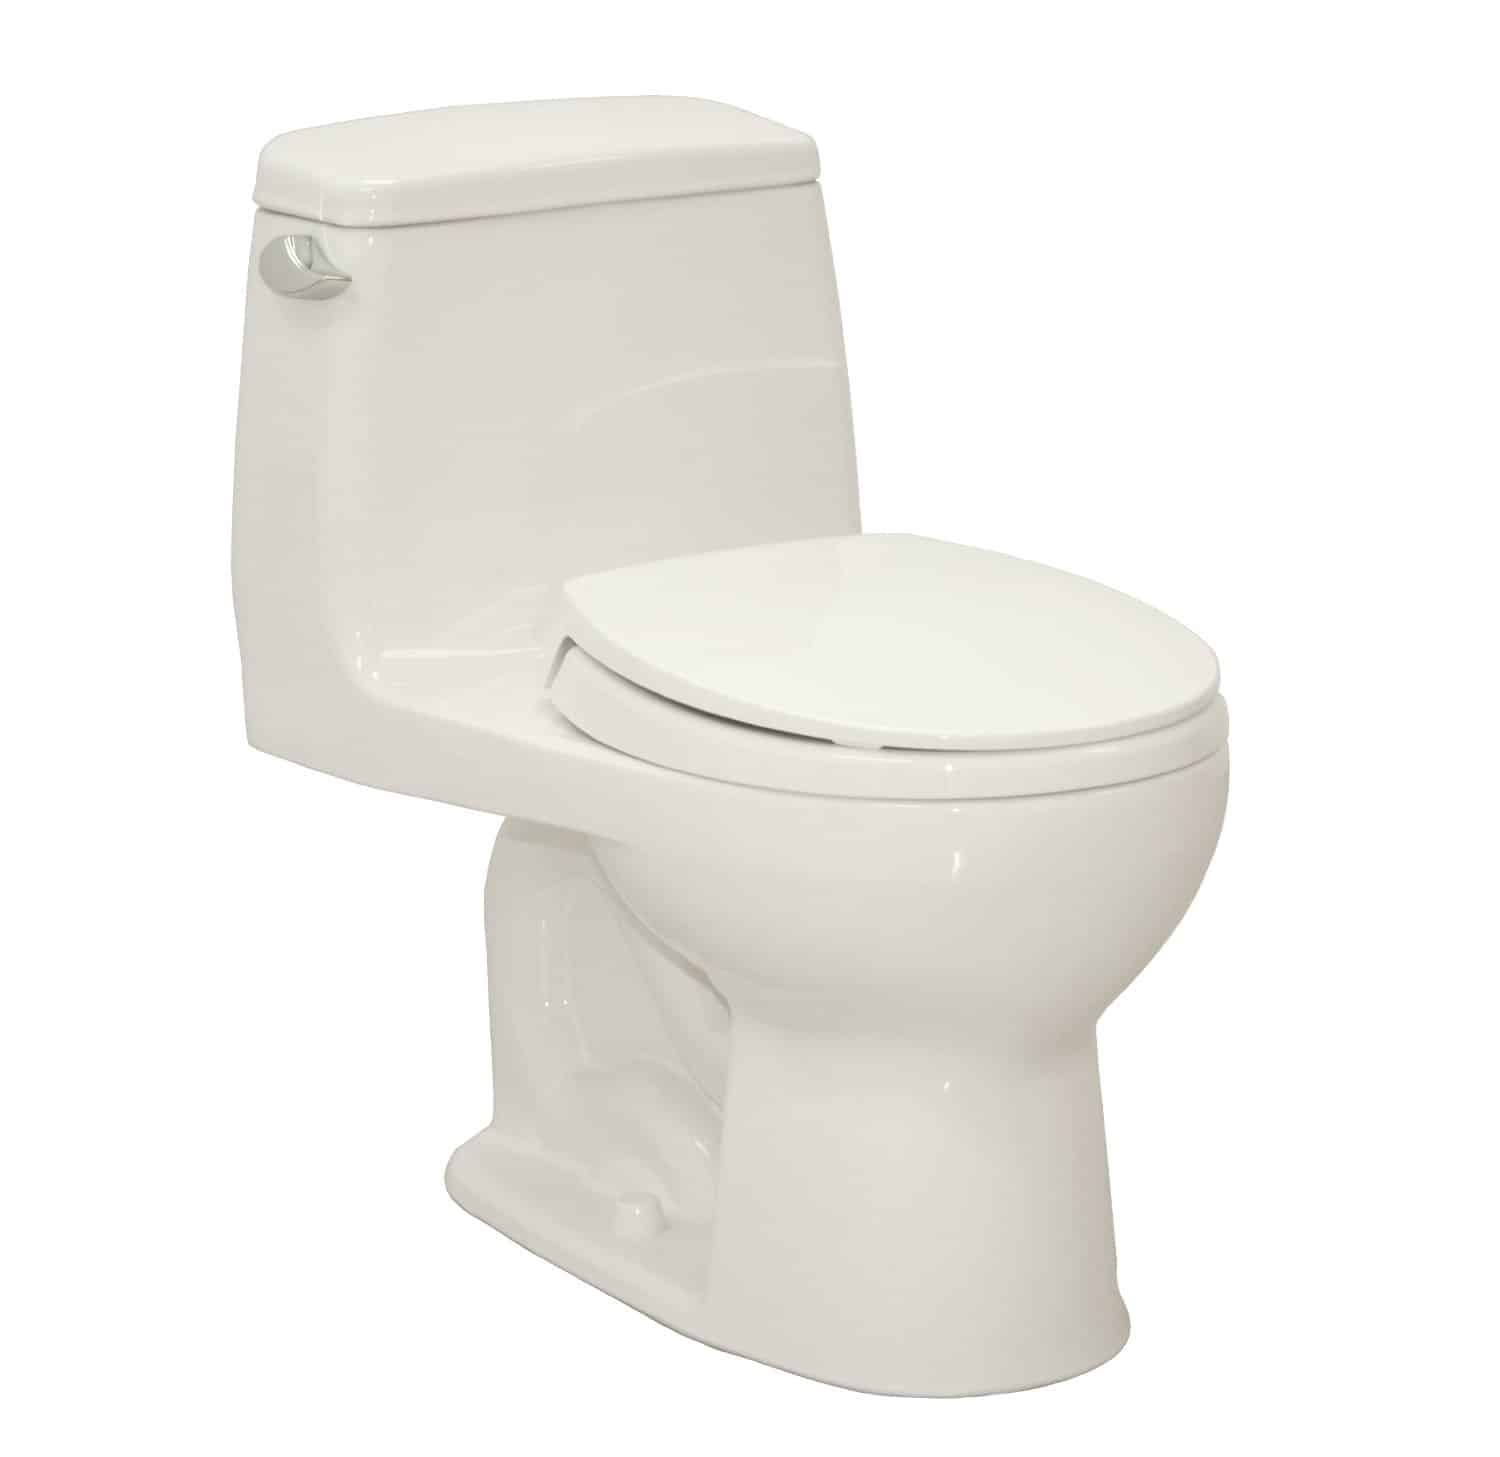 Kohler Santa Rosa >> Best Compact Toilets For Small Bathrooms Reviews - The Toilet Seat Guy